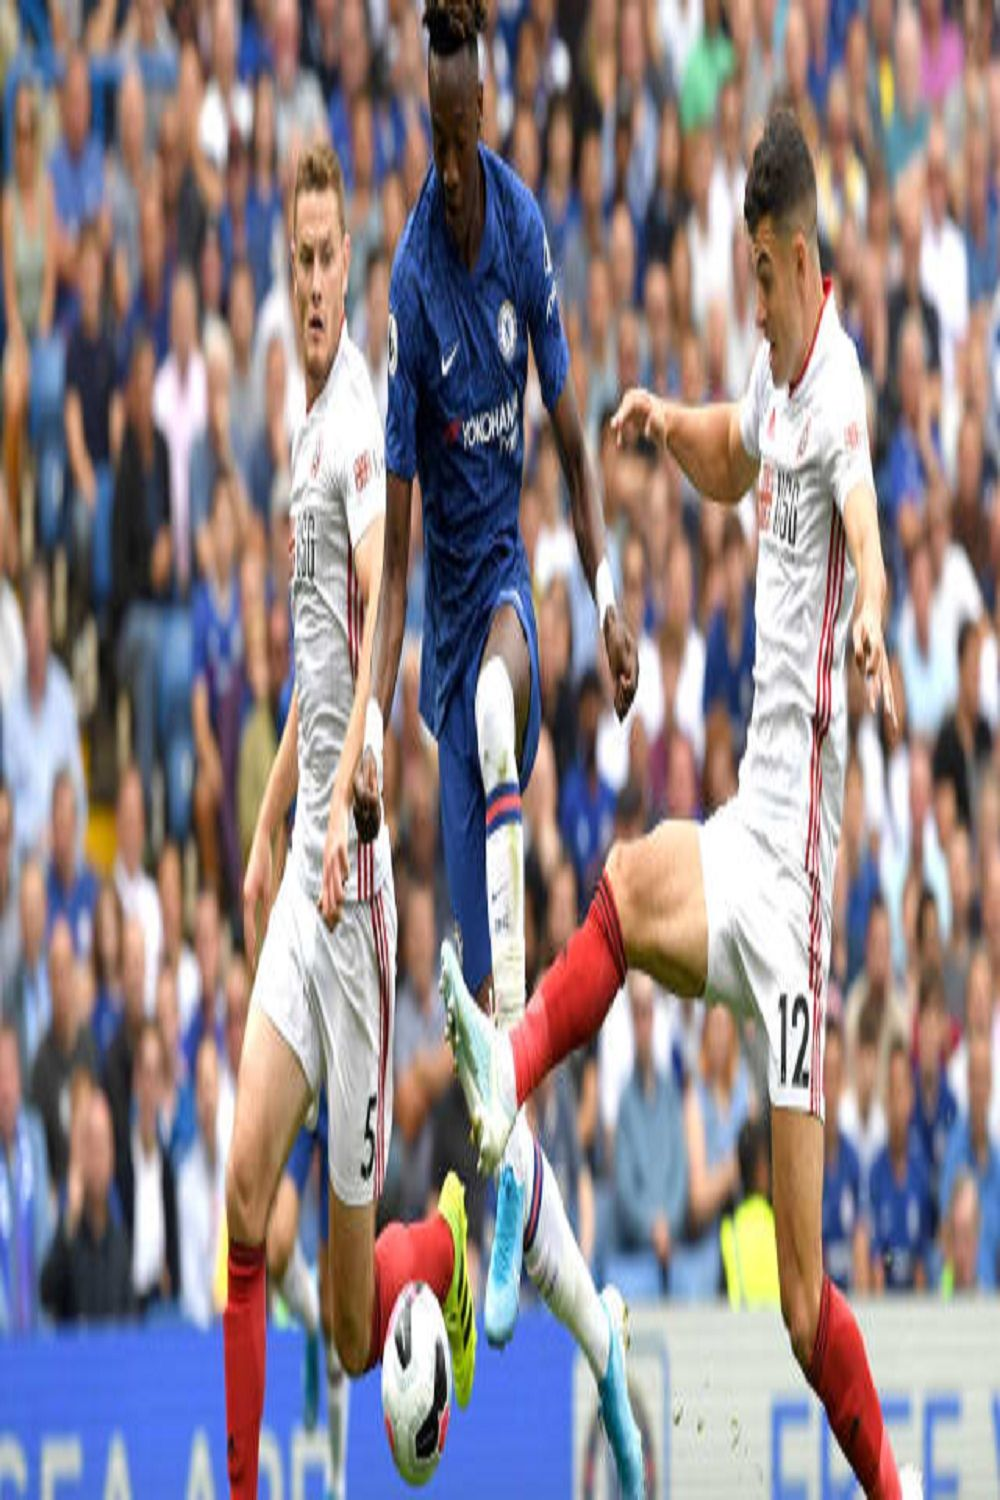 Tvcabell provides live football news or soccer matches